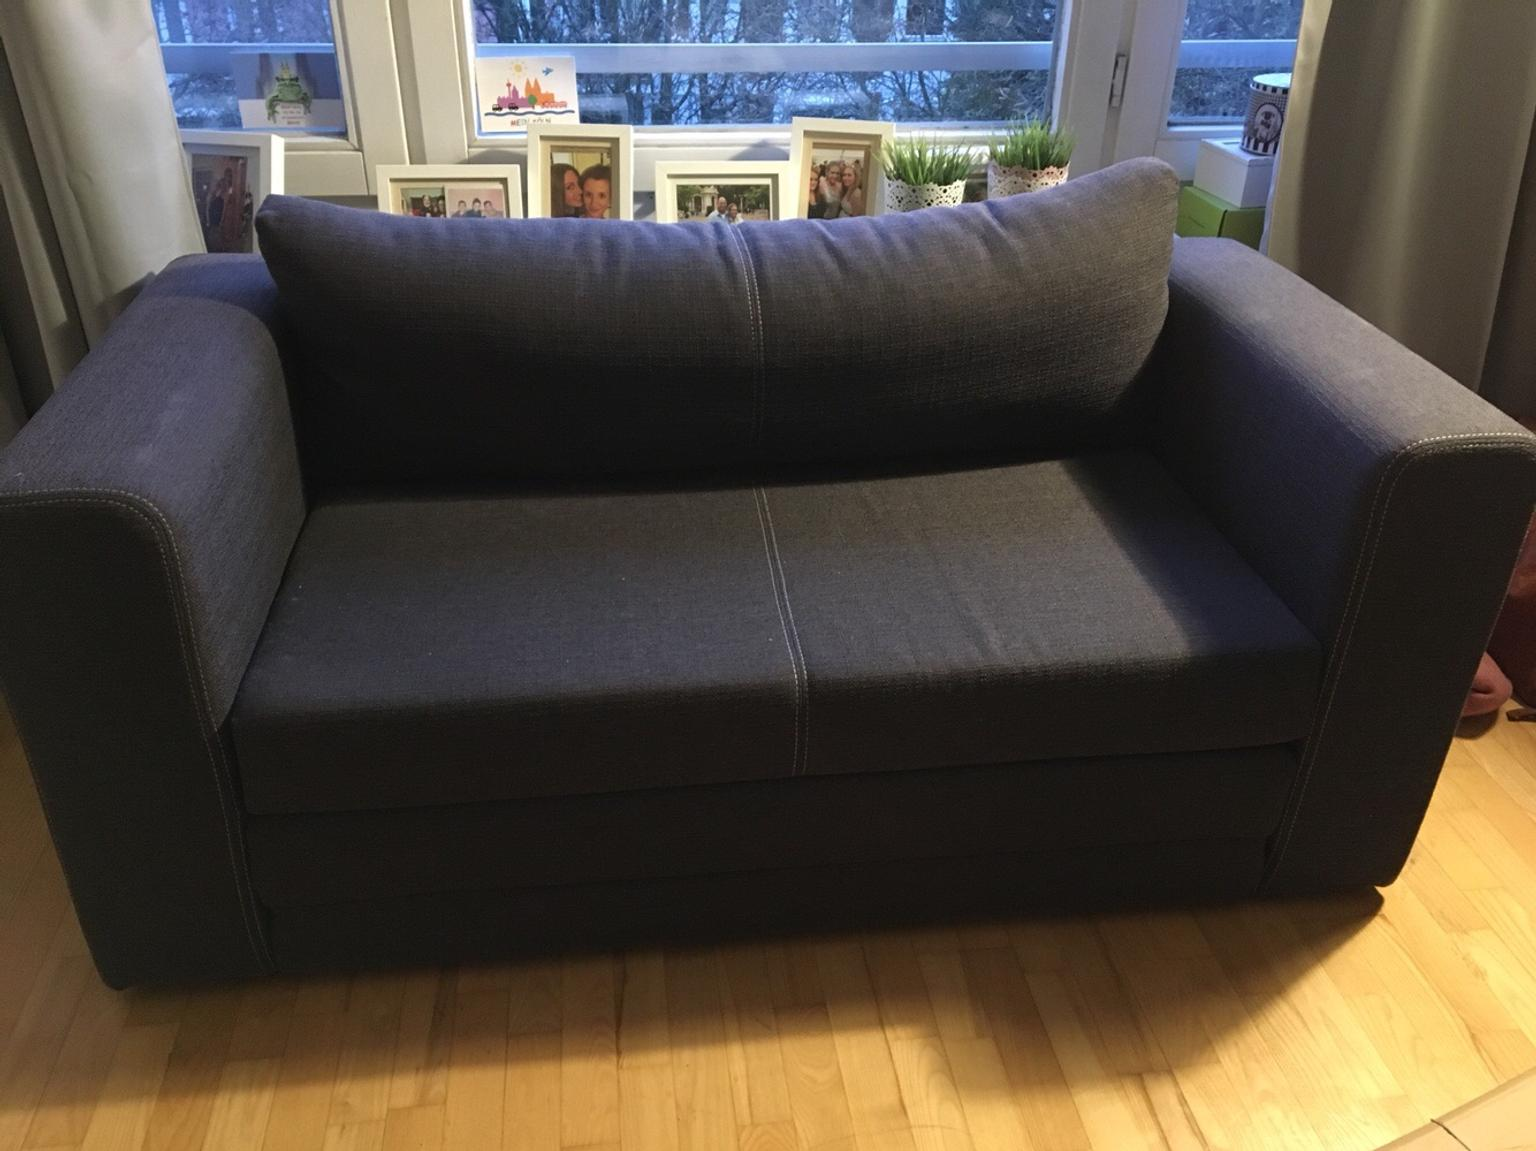 Askeby Schlafcouch Ikea In 22087 Hamburg For 100 00 For Sale Shpock